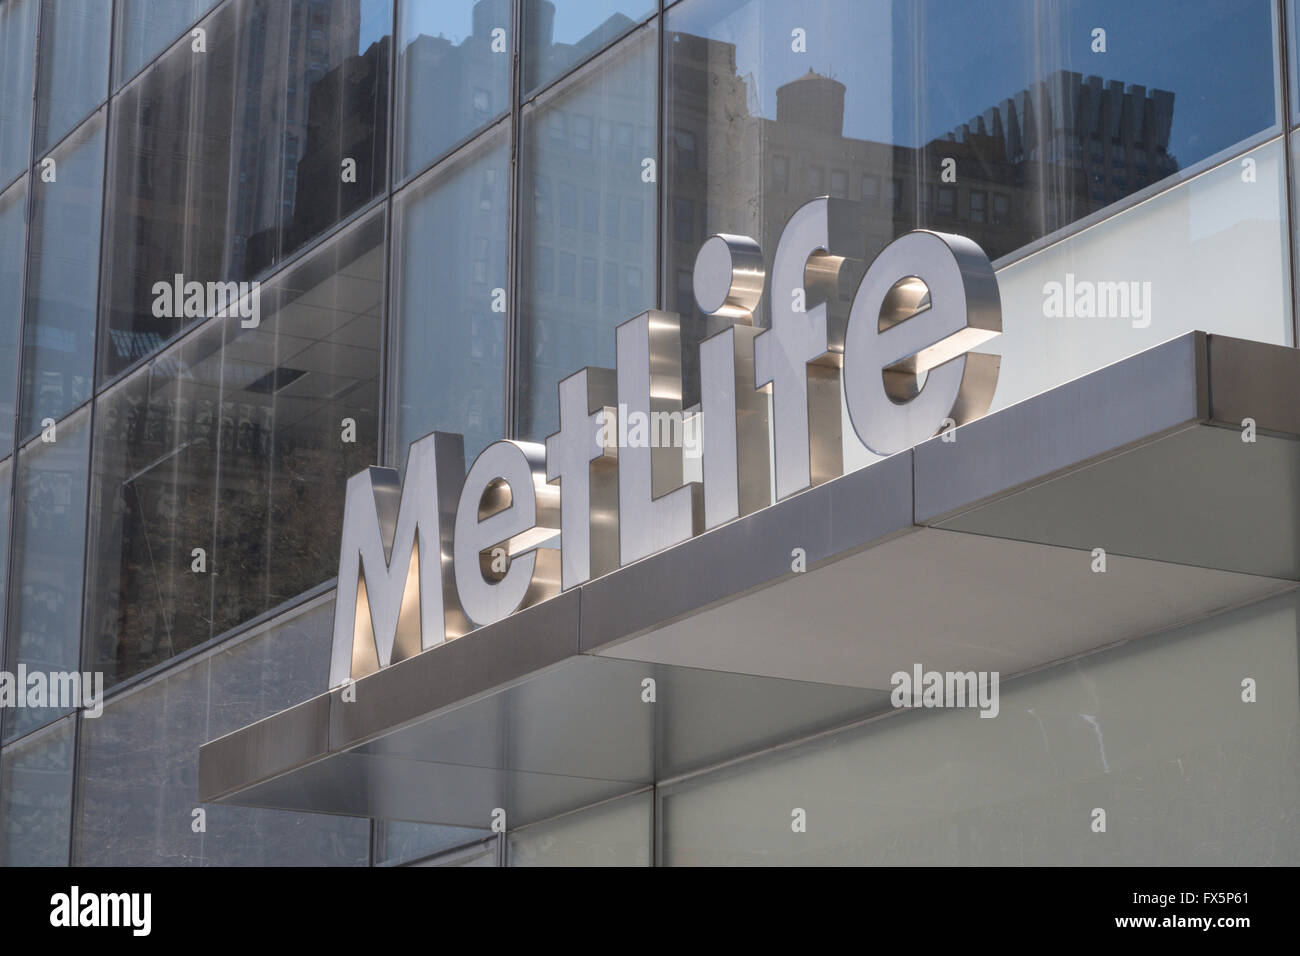 Met Life Building.   Old Verizon Building - 1095 Avenue of the Americas @ 42nd St. NYC, USA - Stock Image